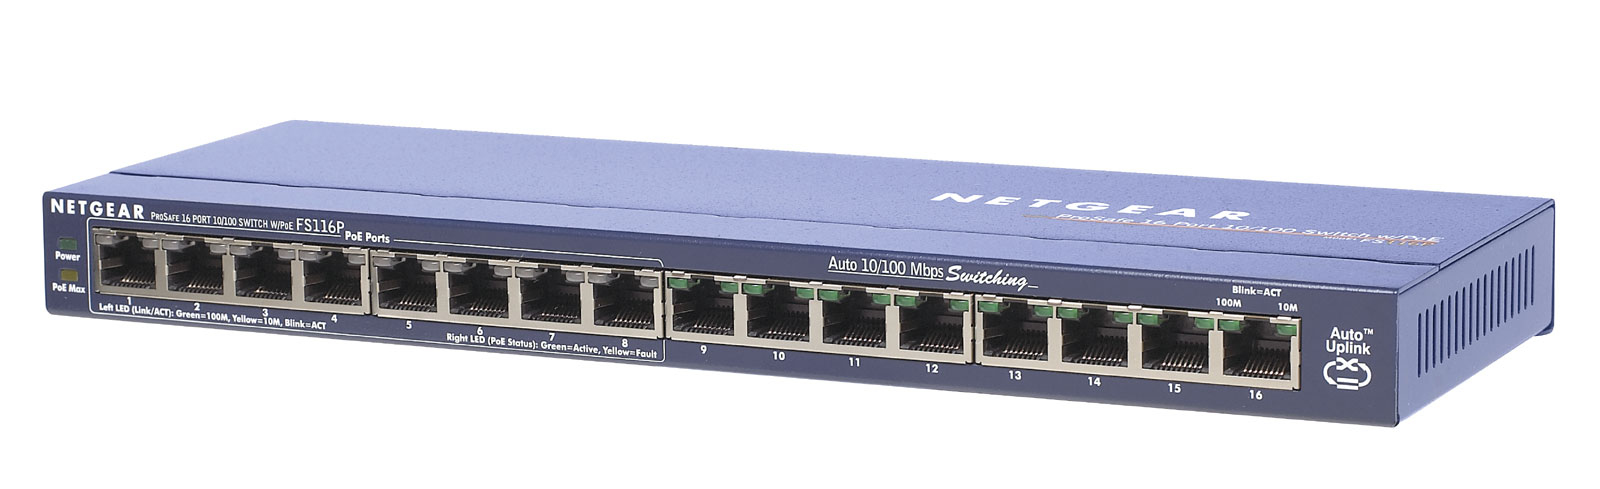 Switch Prosafe Fast Enet Fs116 16-port 10/100bt Autosensing With 8-port Power Over Ethernet